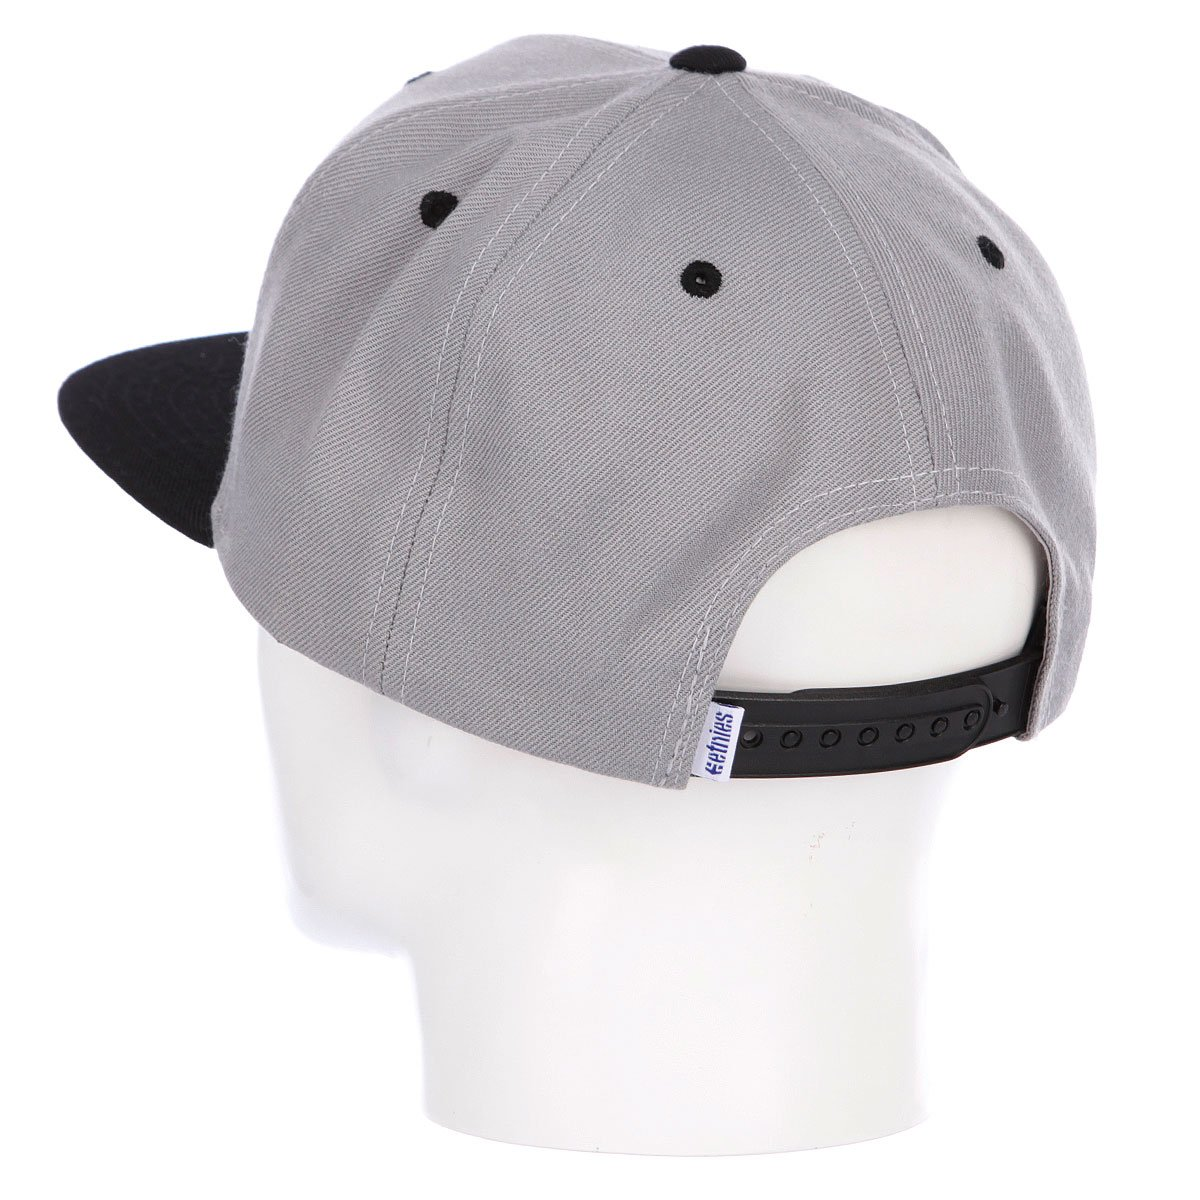 Бейсболка Etnies Yardage Snapback Hat Grey/Black